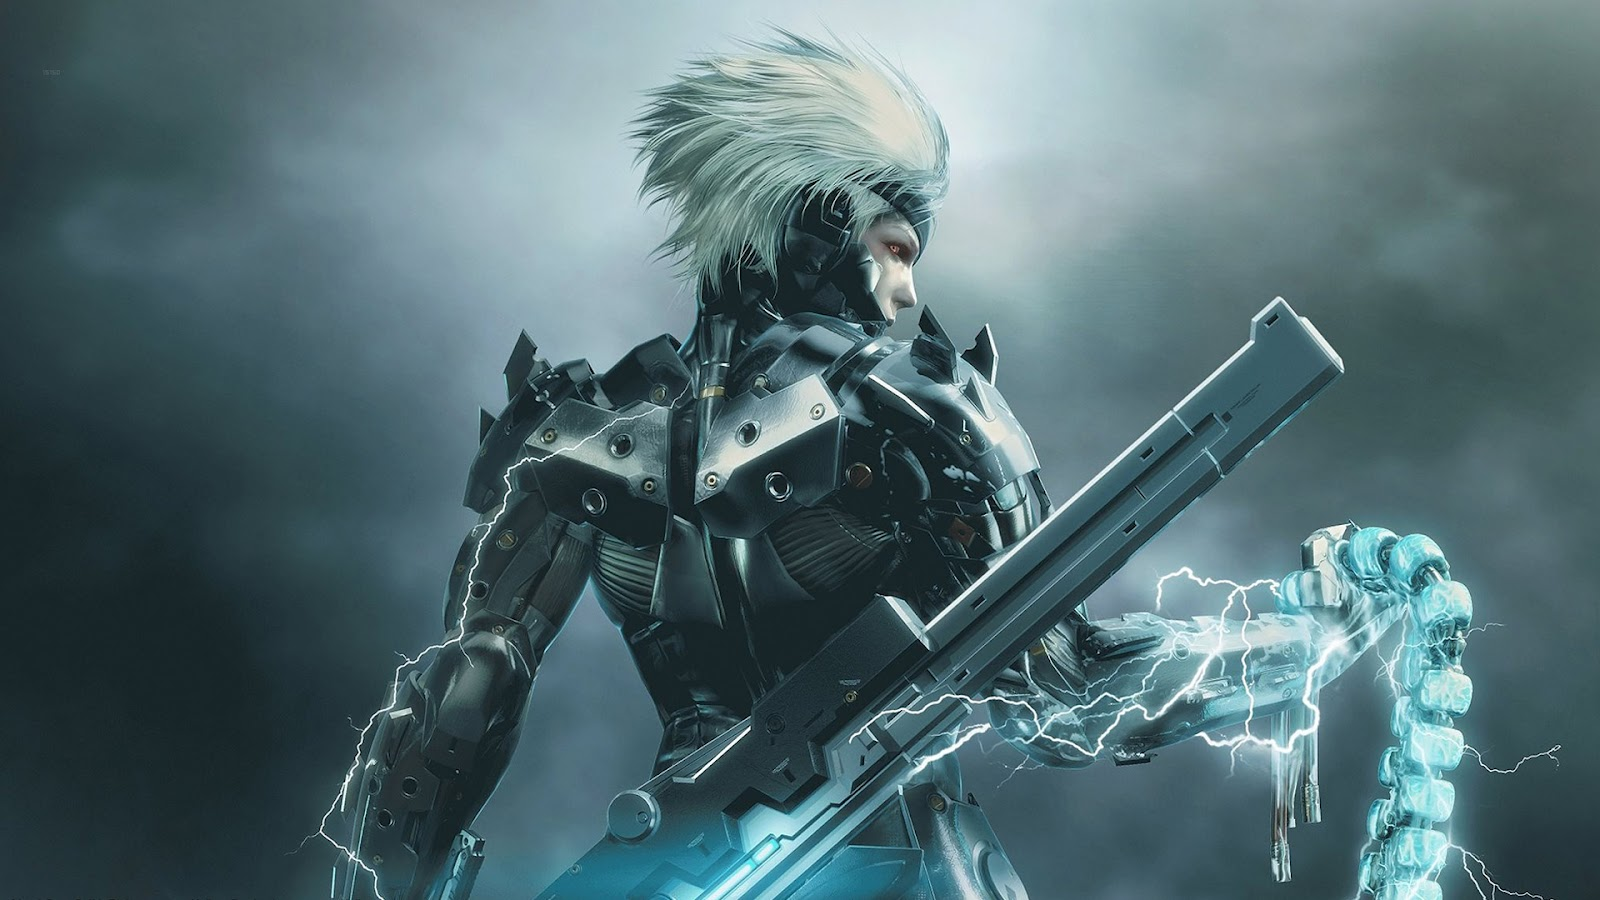 metal+gear+solid+rising+wallpaper+1 Metal Gear Rising: Revengeance Wallpapers in HD